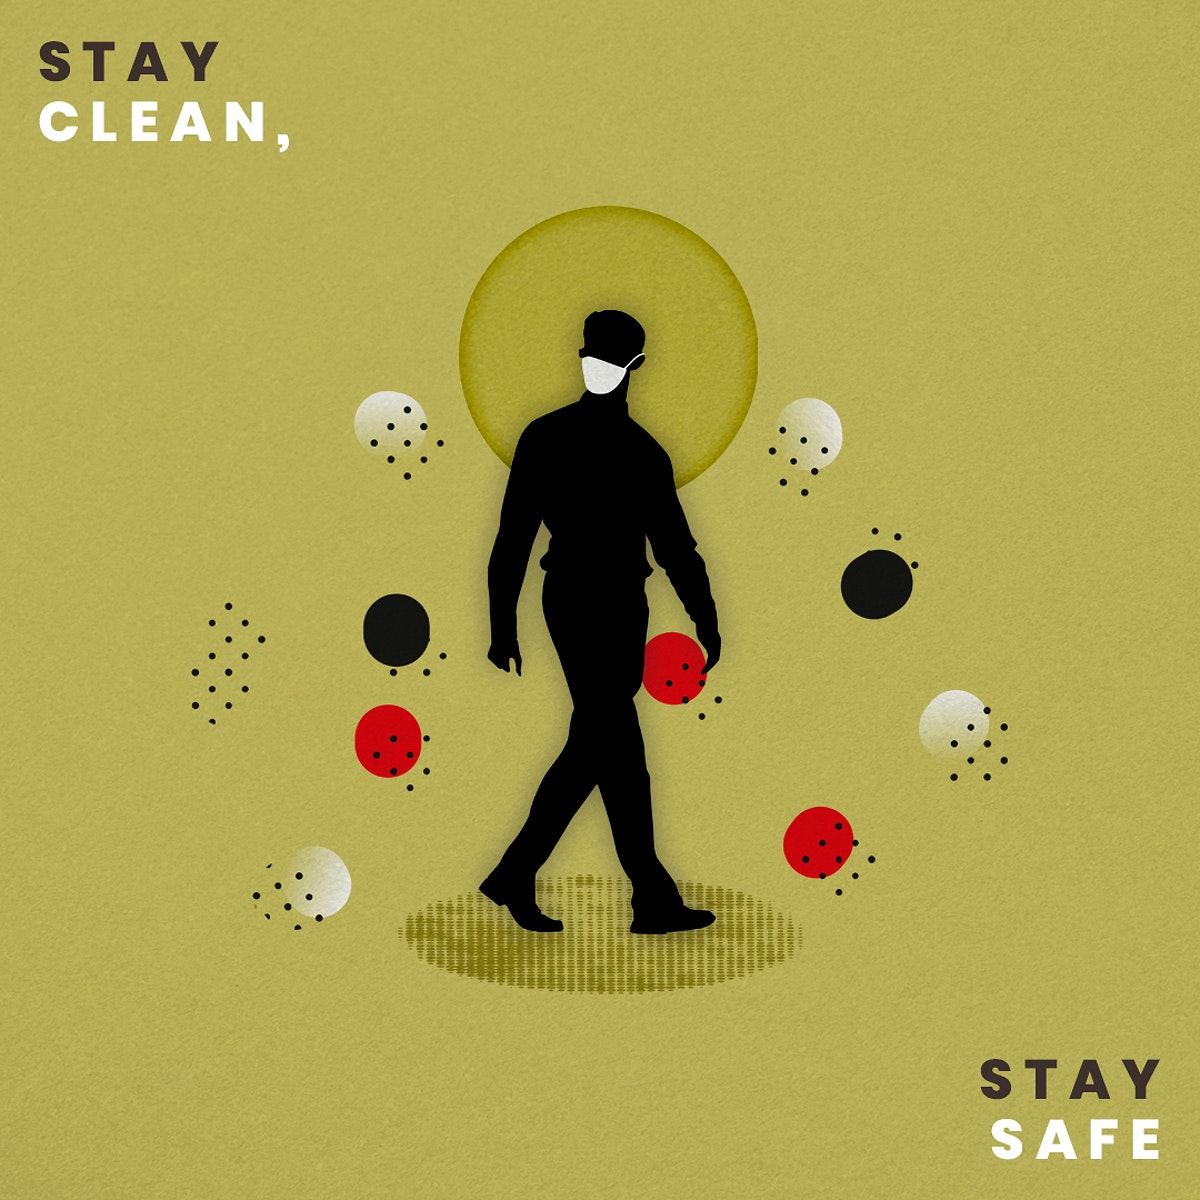 Stay clean, stay safe during coronavirus pandemic social template mockup